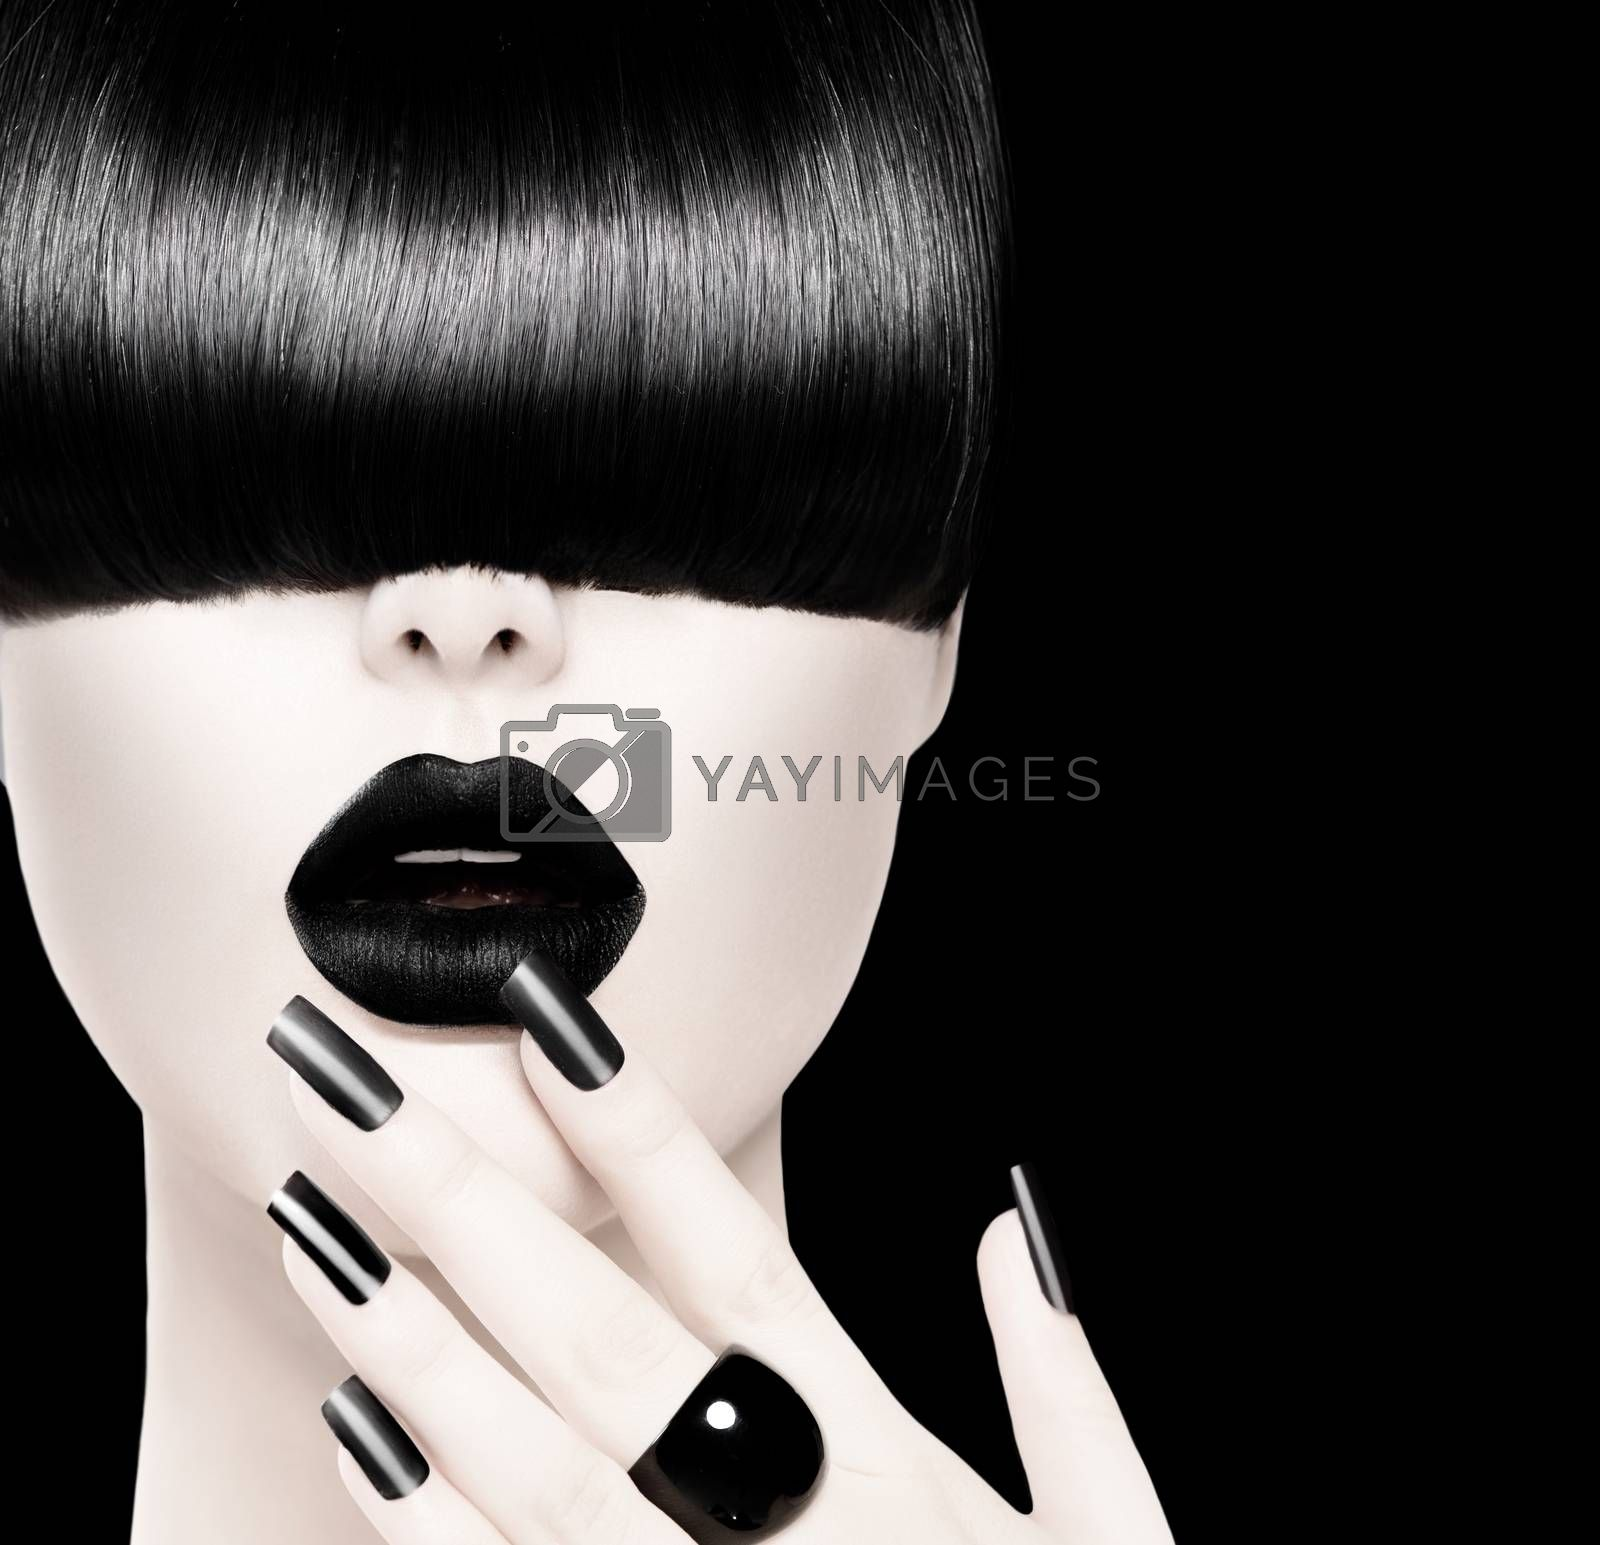 High Fashion Black and White Model Girl Portrait by SubbotinaA